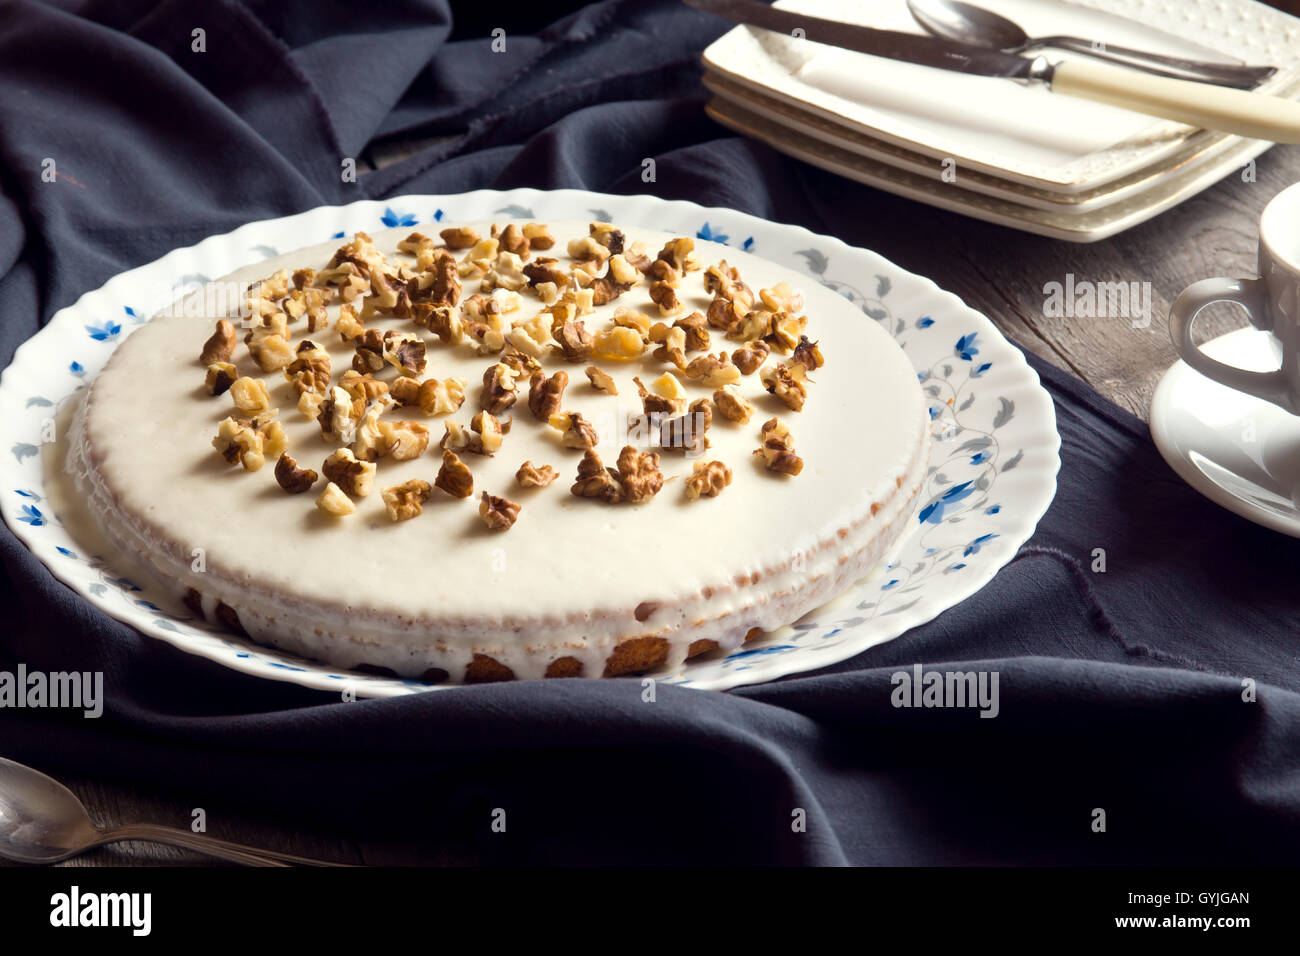 Homemade pumpkin and walnut cake with cream icing over rustic wooden table - healthy homemade pastry - Stock Image